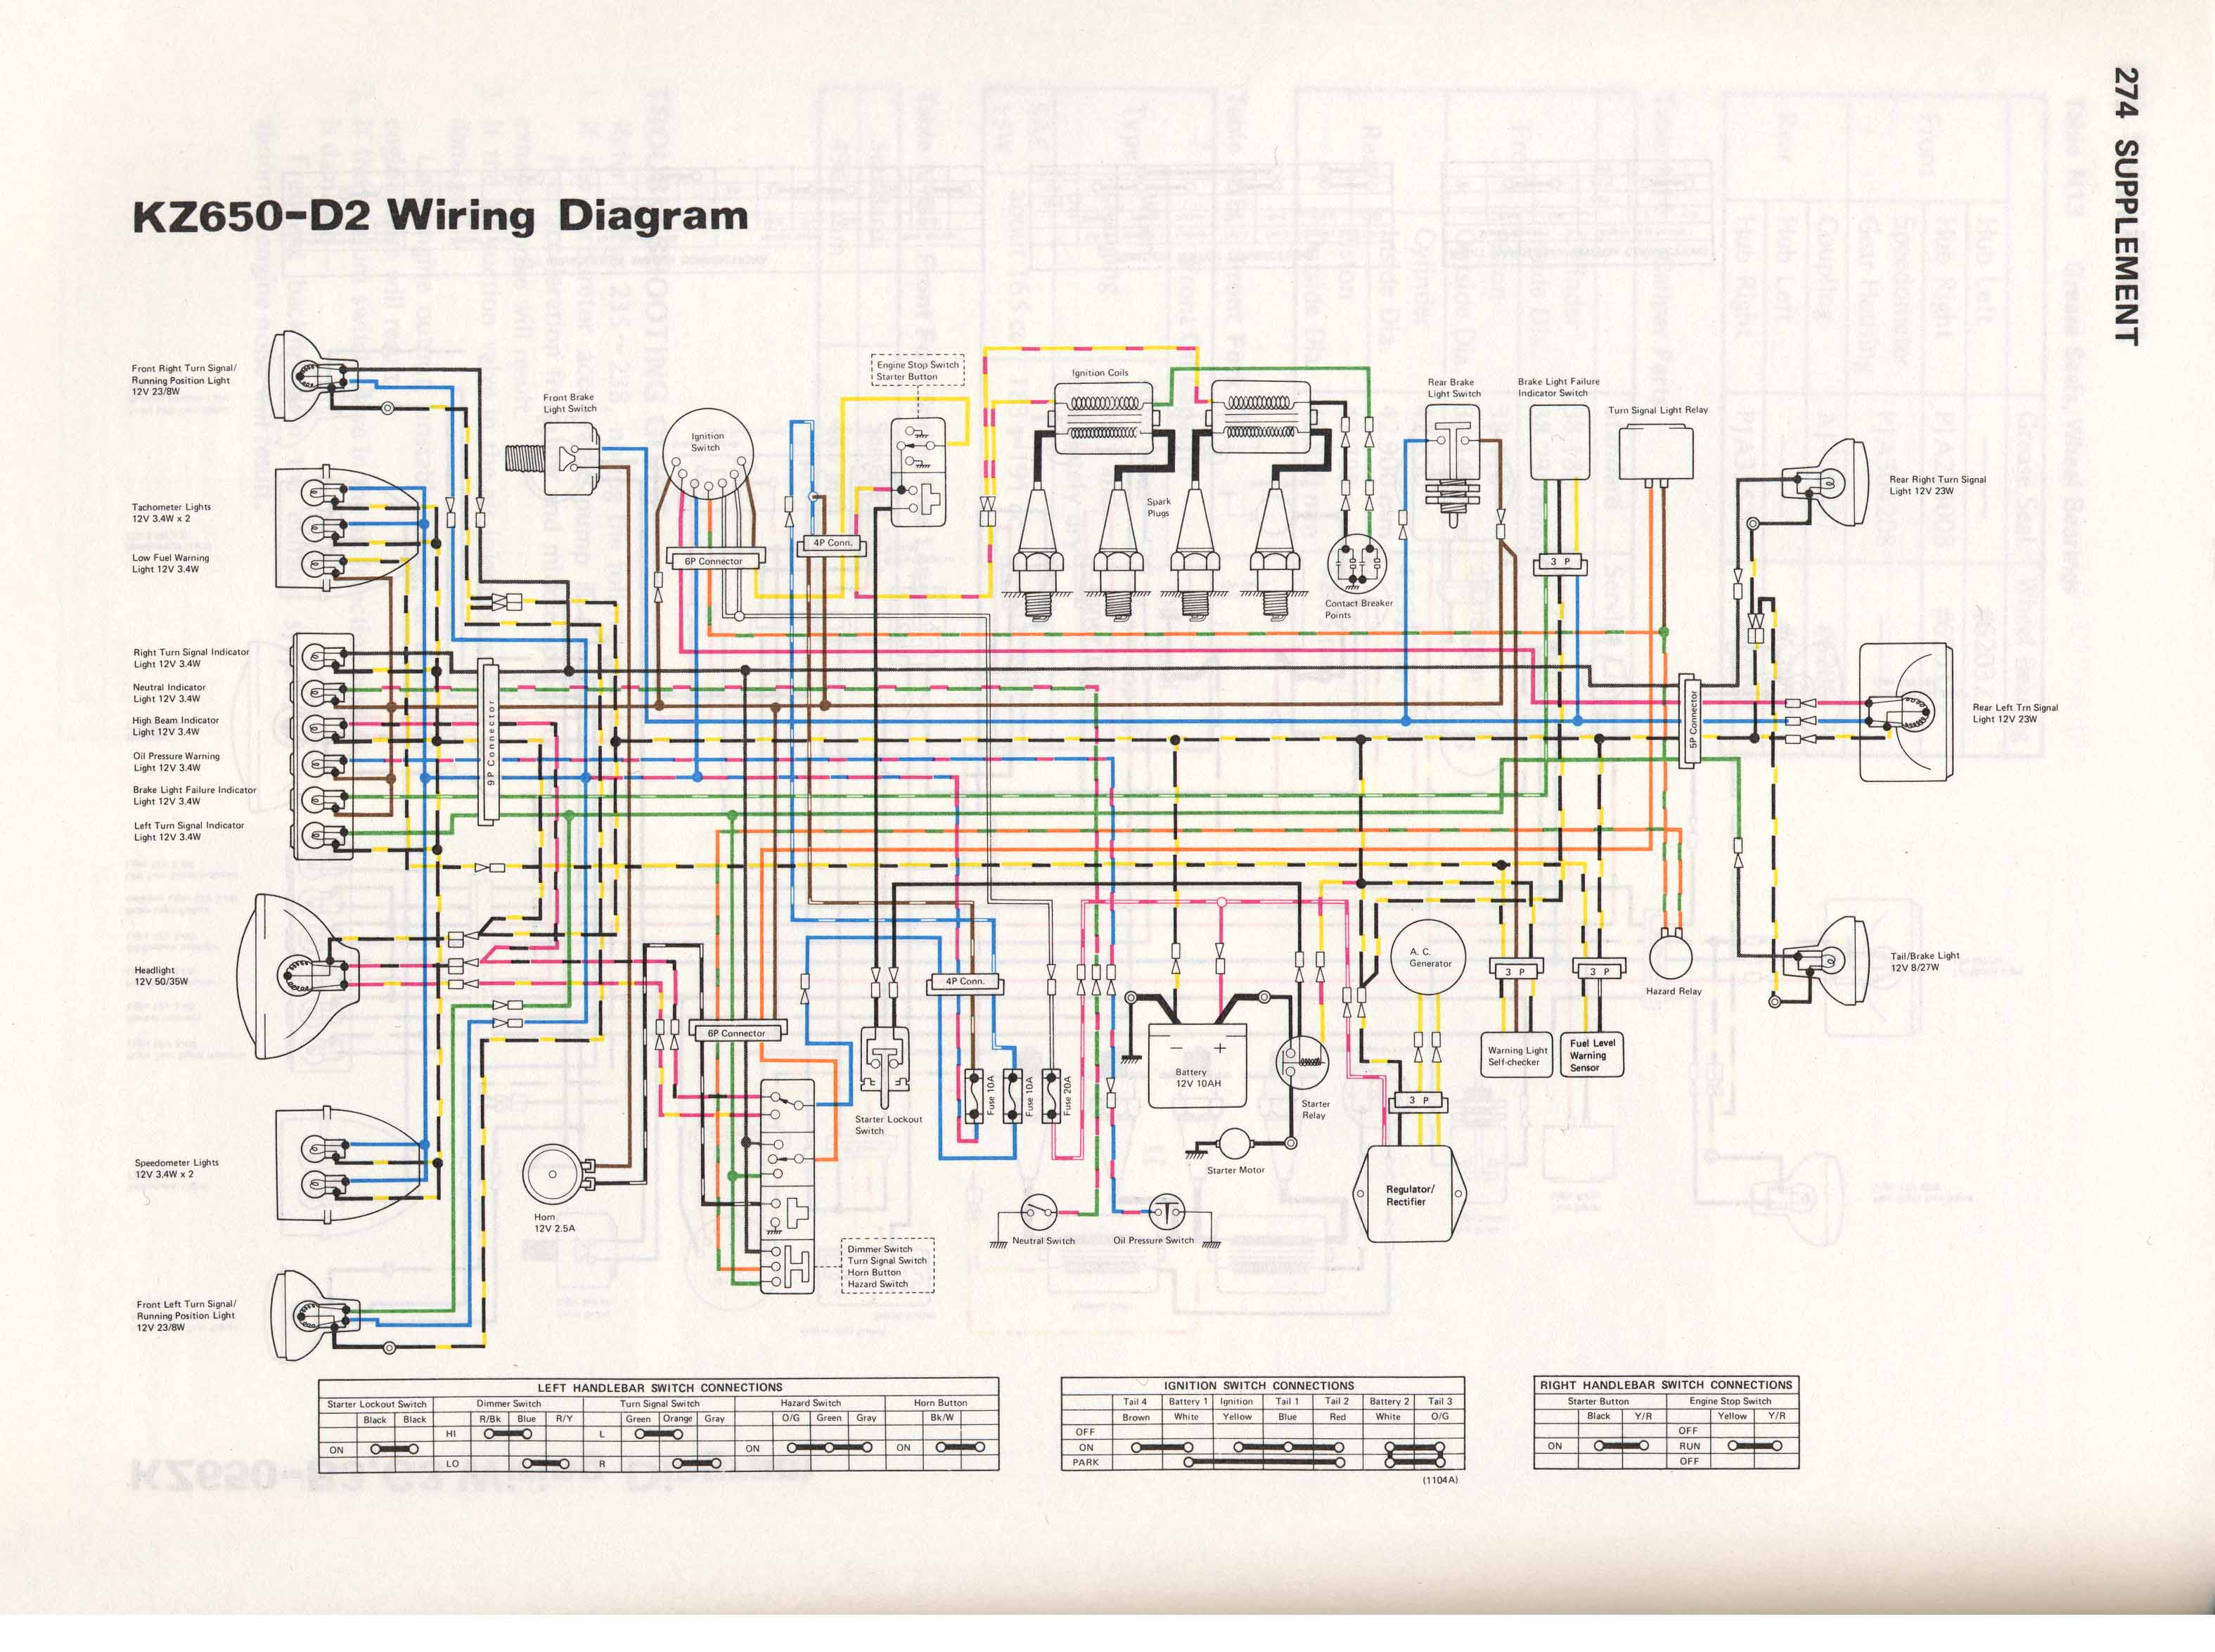 KZ650 D2 kz650 info wiring diagrams 1980 kawasaki kz750 wiring diagram at virtualis.co